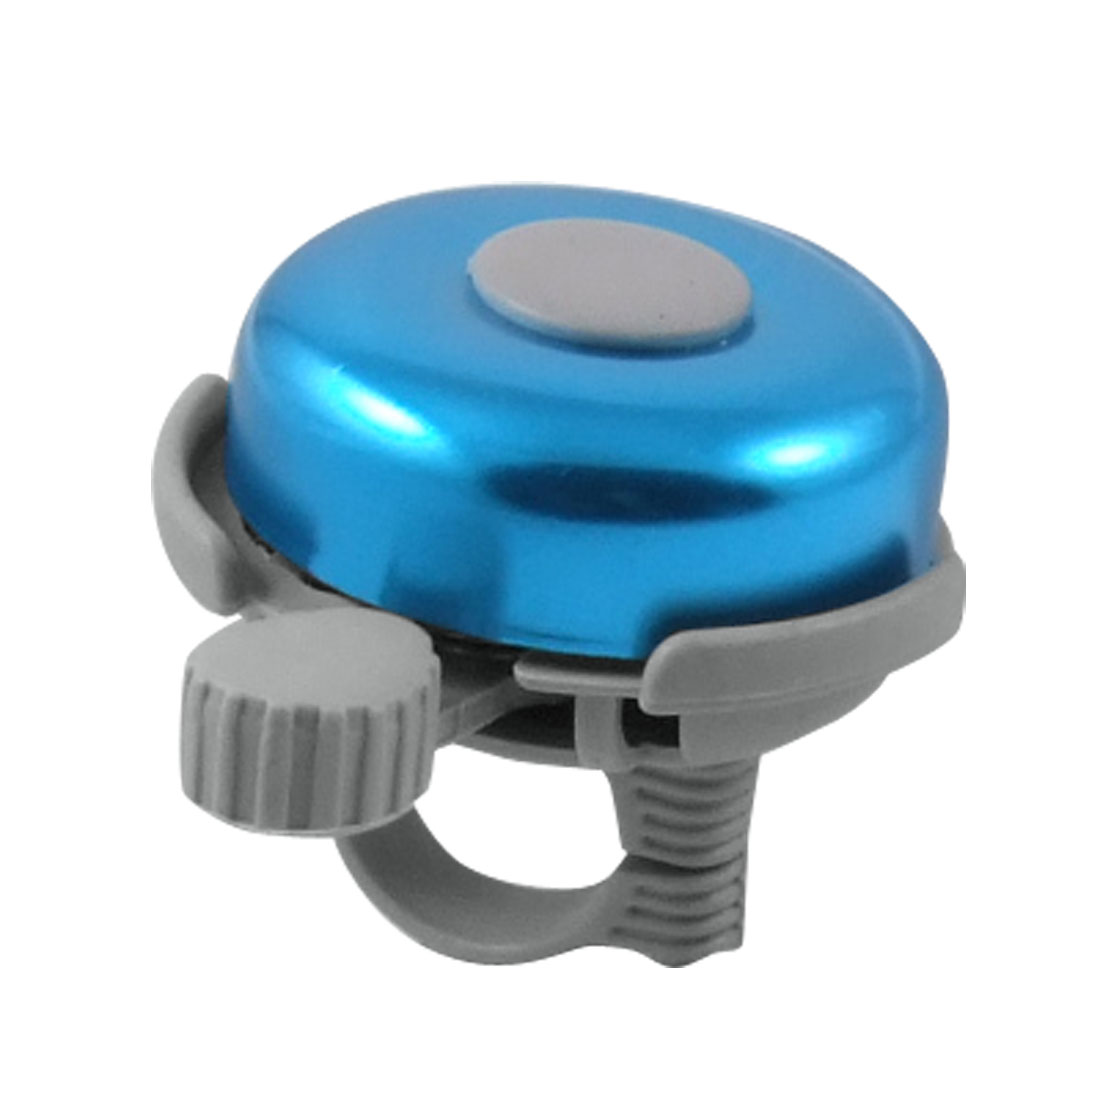 "Cyan Gray Round Plastic 0.87"" Handlebar Bicycle Bell Alarm"